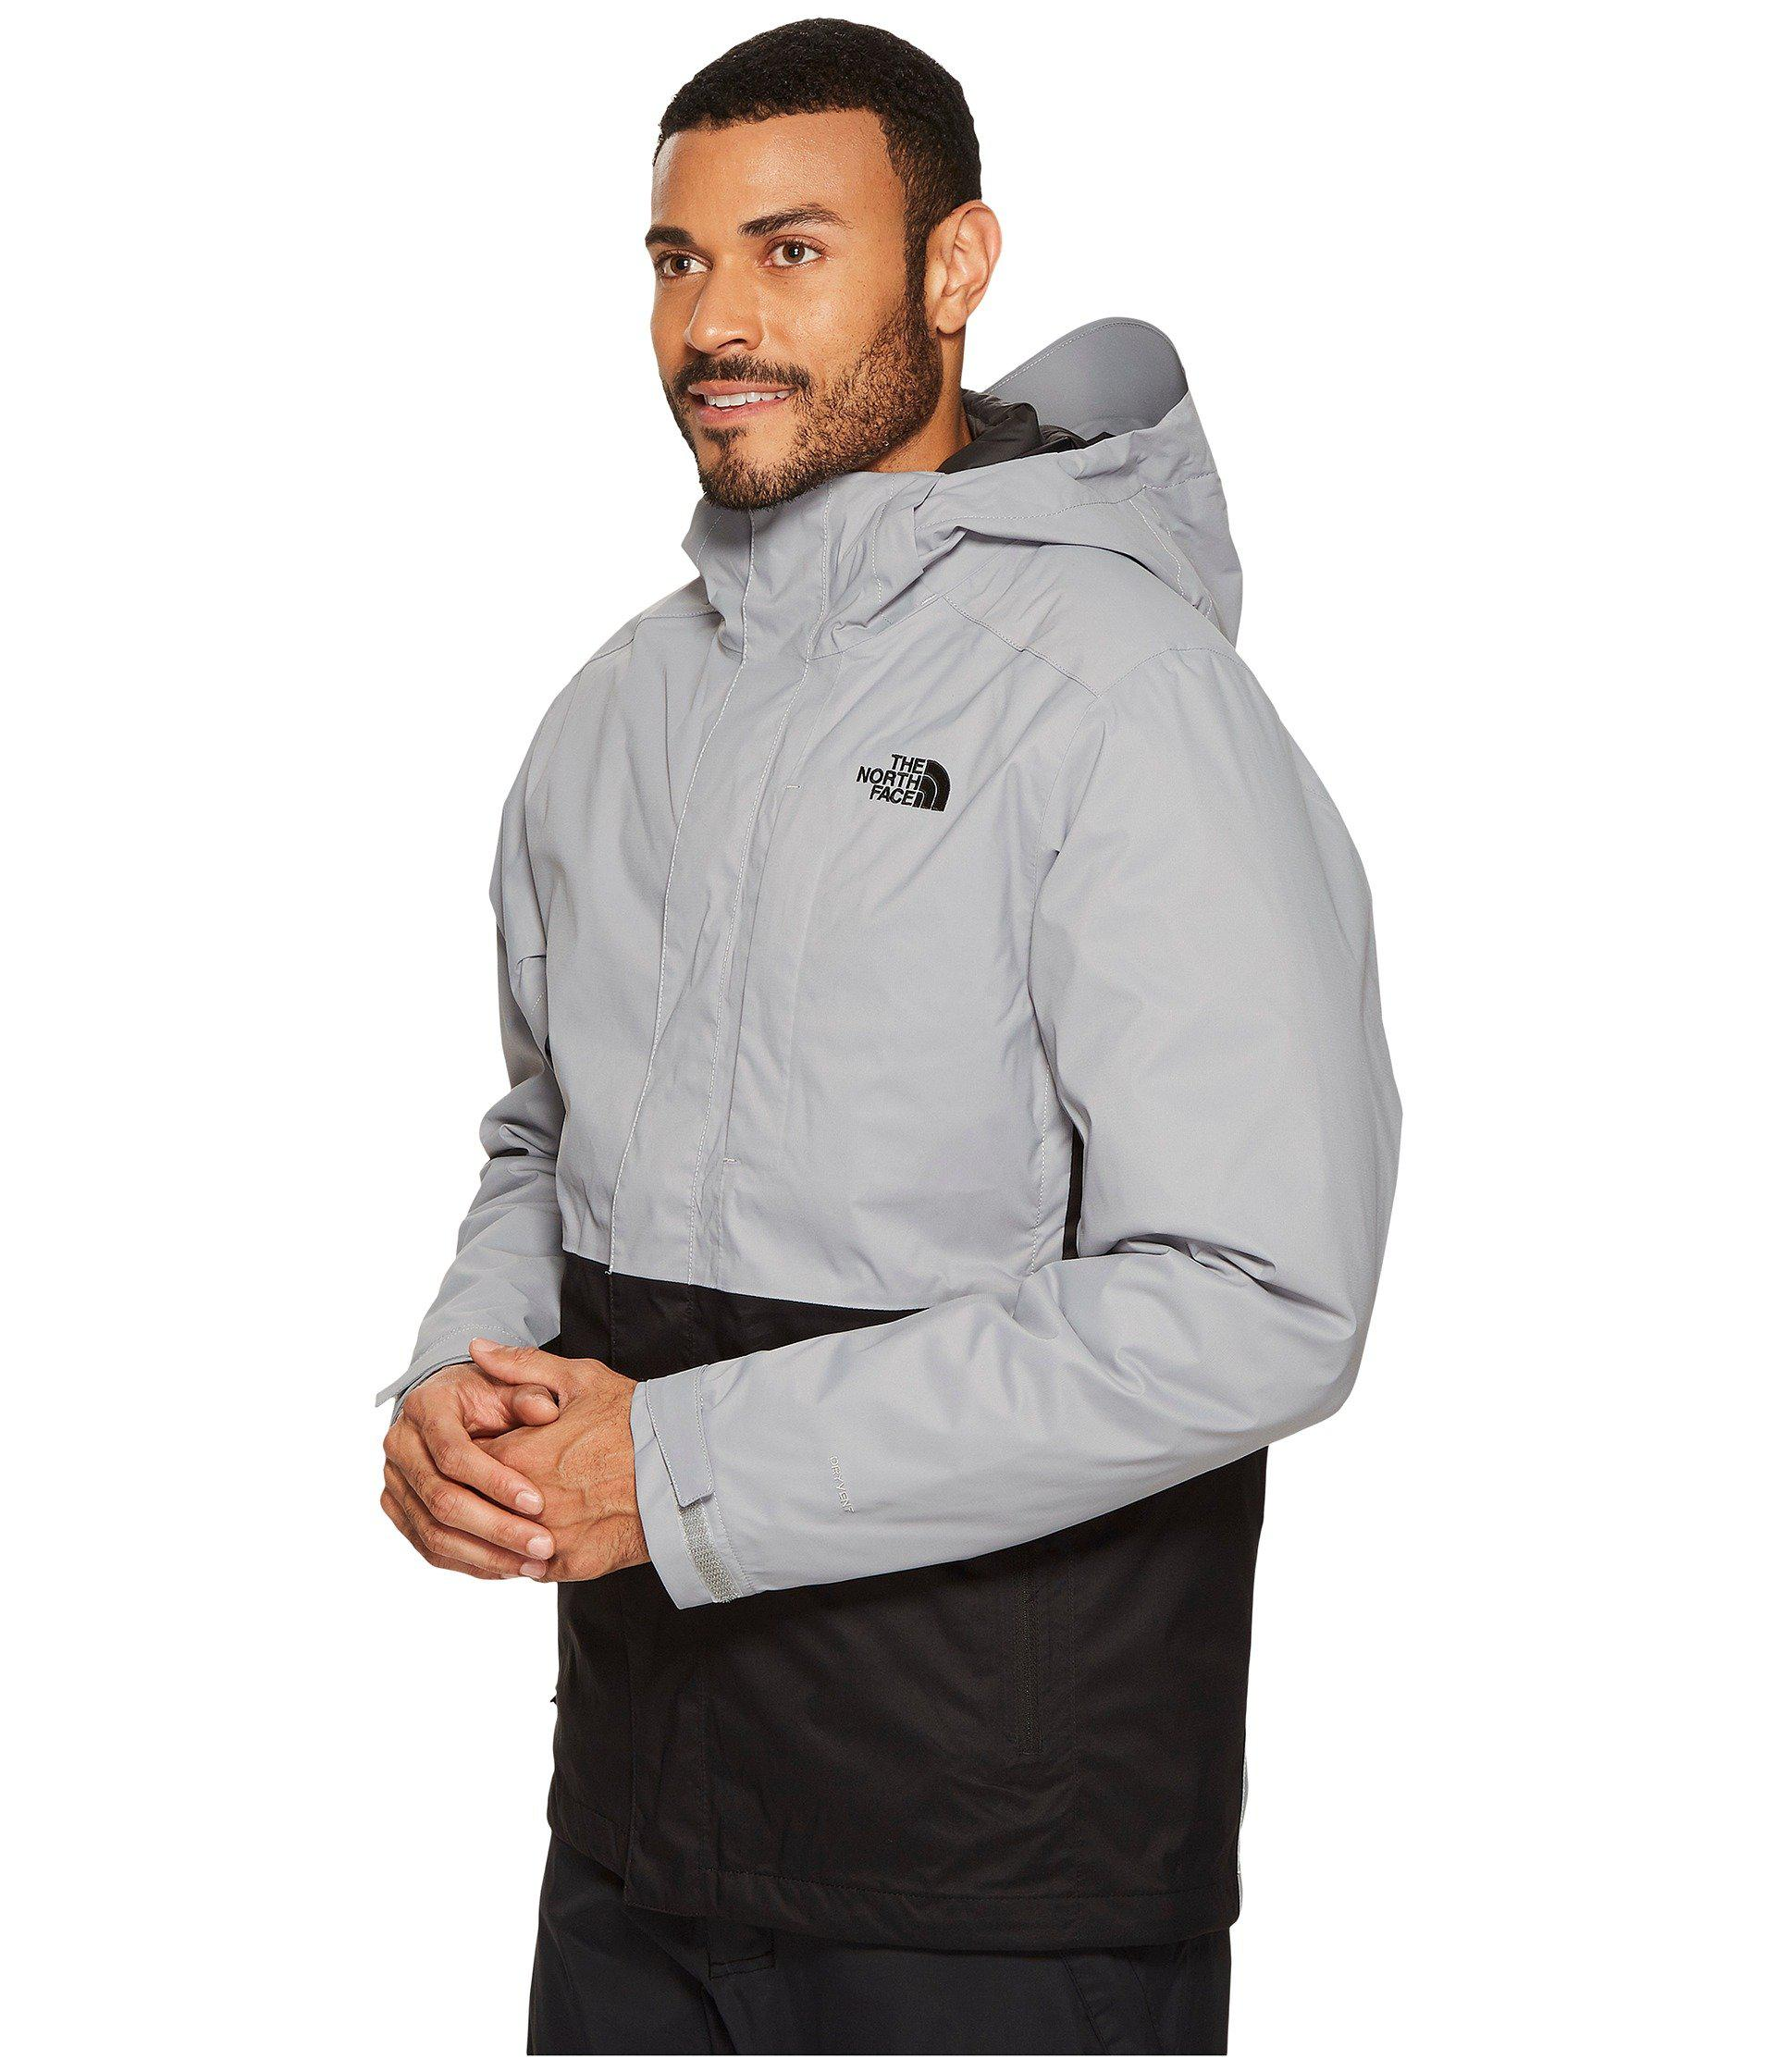 258b1b9ee536 ... australia mens lyst the north face altier down triclimate jacket in  gray . b5c0f 6f63c